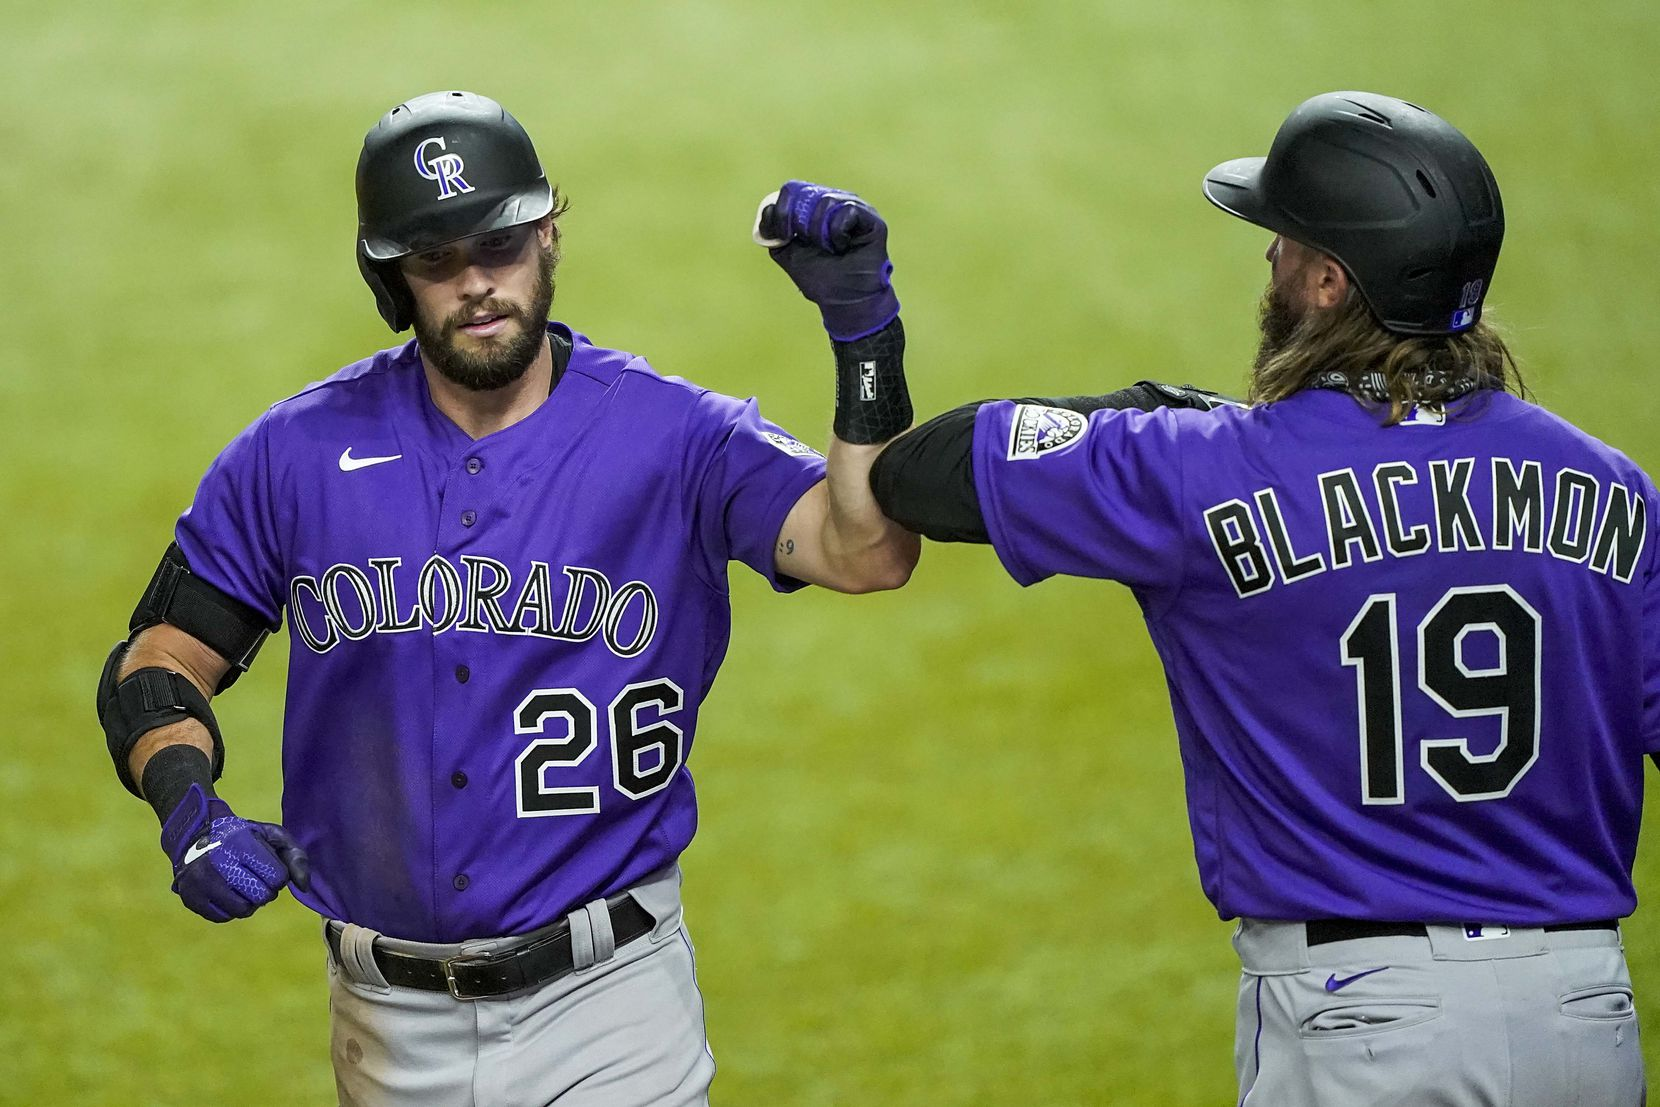 Colorado Rockies outfielder David Dahl celebrates with Charlie Blackmon after hitting a 2-run home run during the fifth inning of exhibition game against the Texas Rangers at Globe Life Field on Tuesday, July 21, 2020.